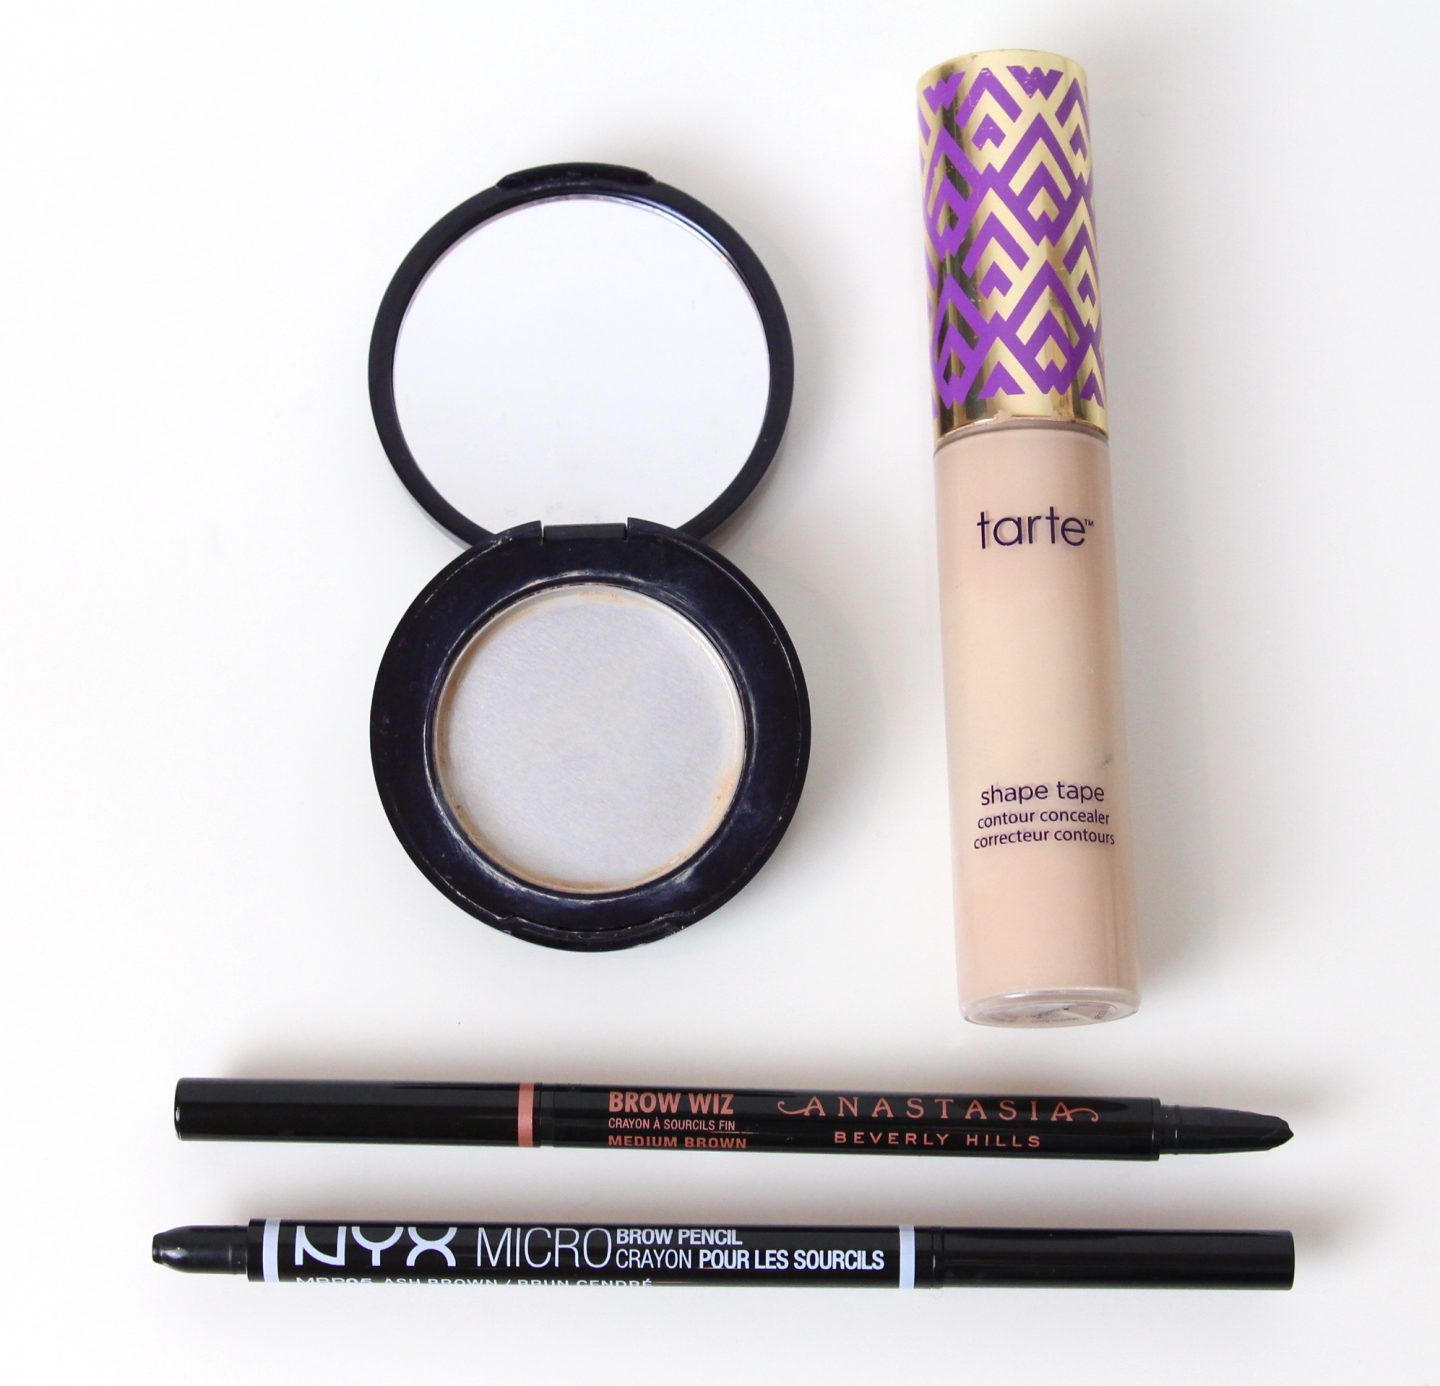 Anastasia Brow Wiz, NYX Micro Brow Pencil, Estee Lauder Double Wear Concealer, Tarte Shape Tape Concealer Light Sand